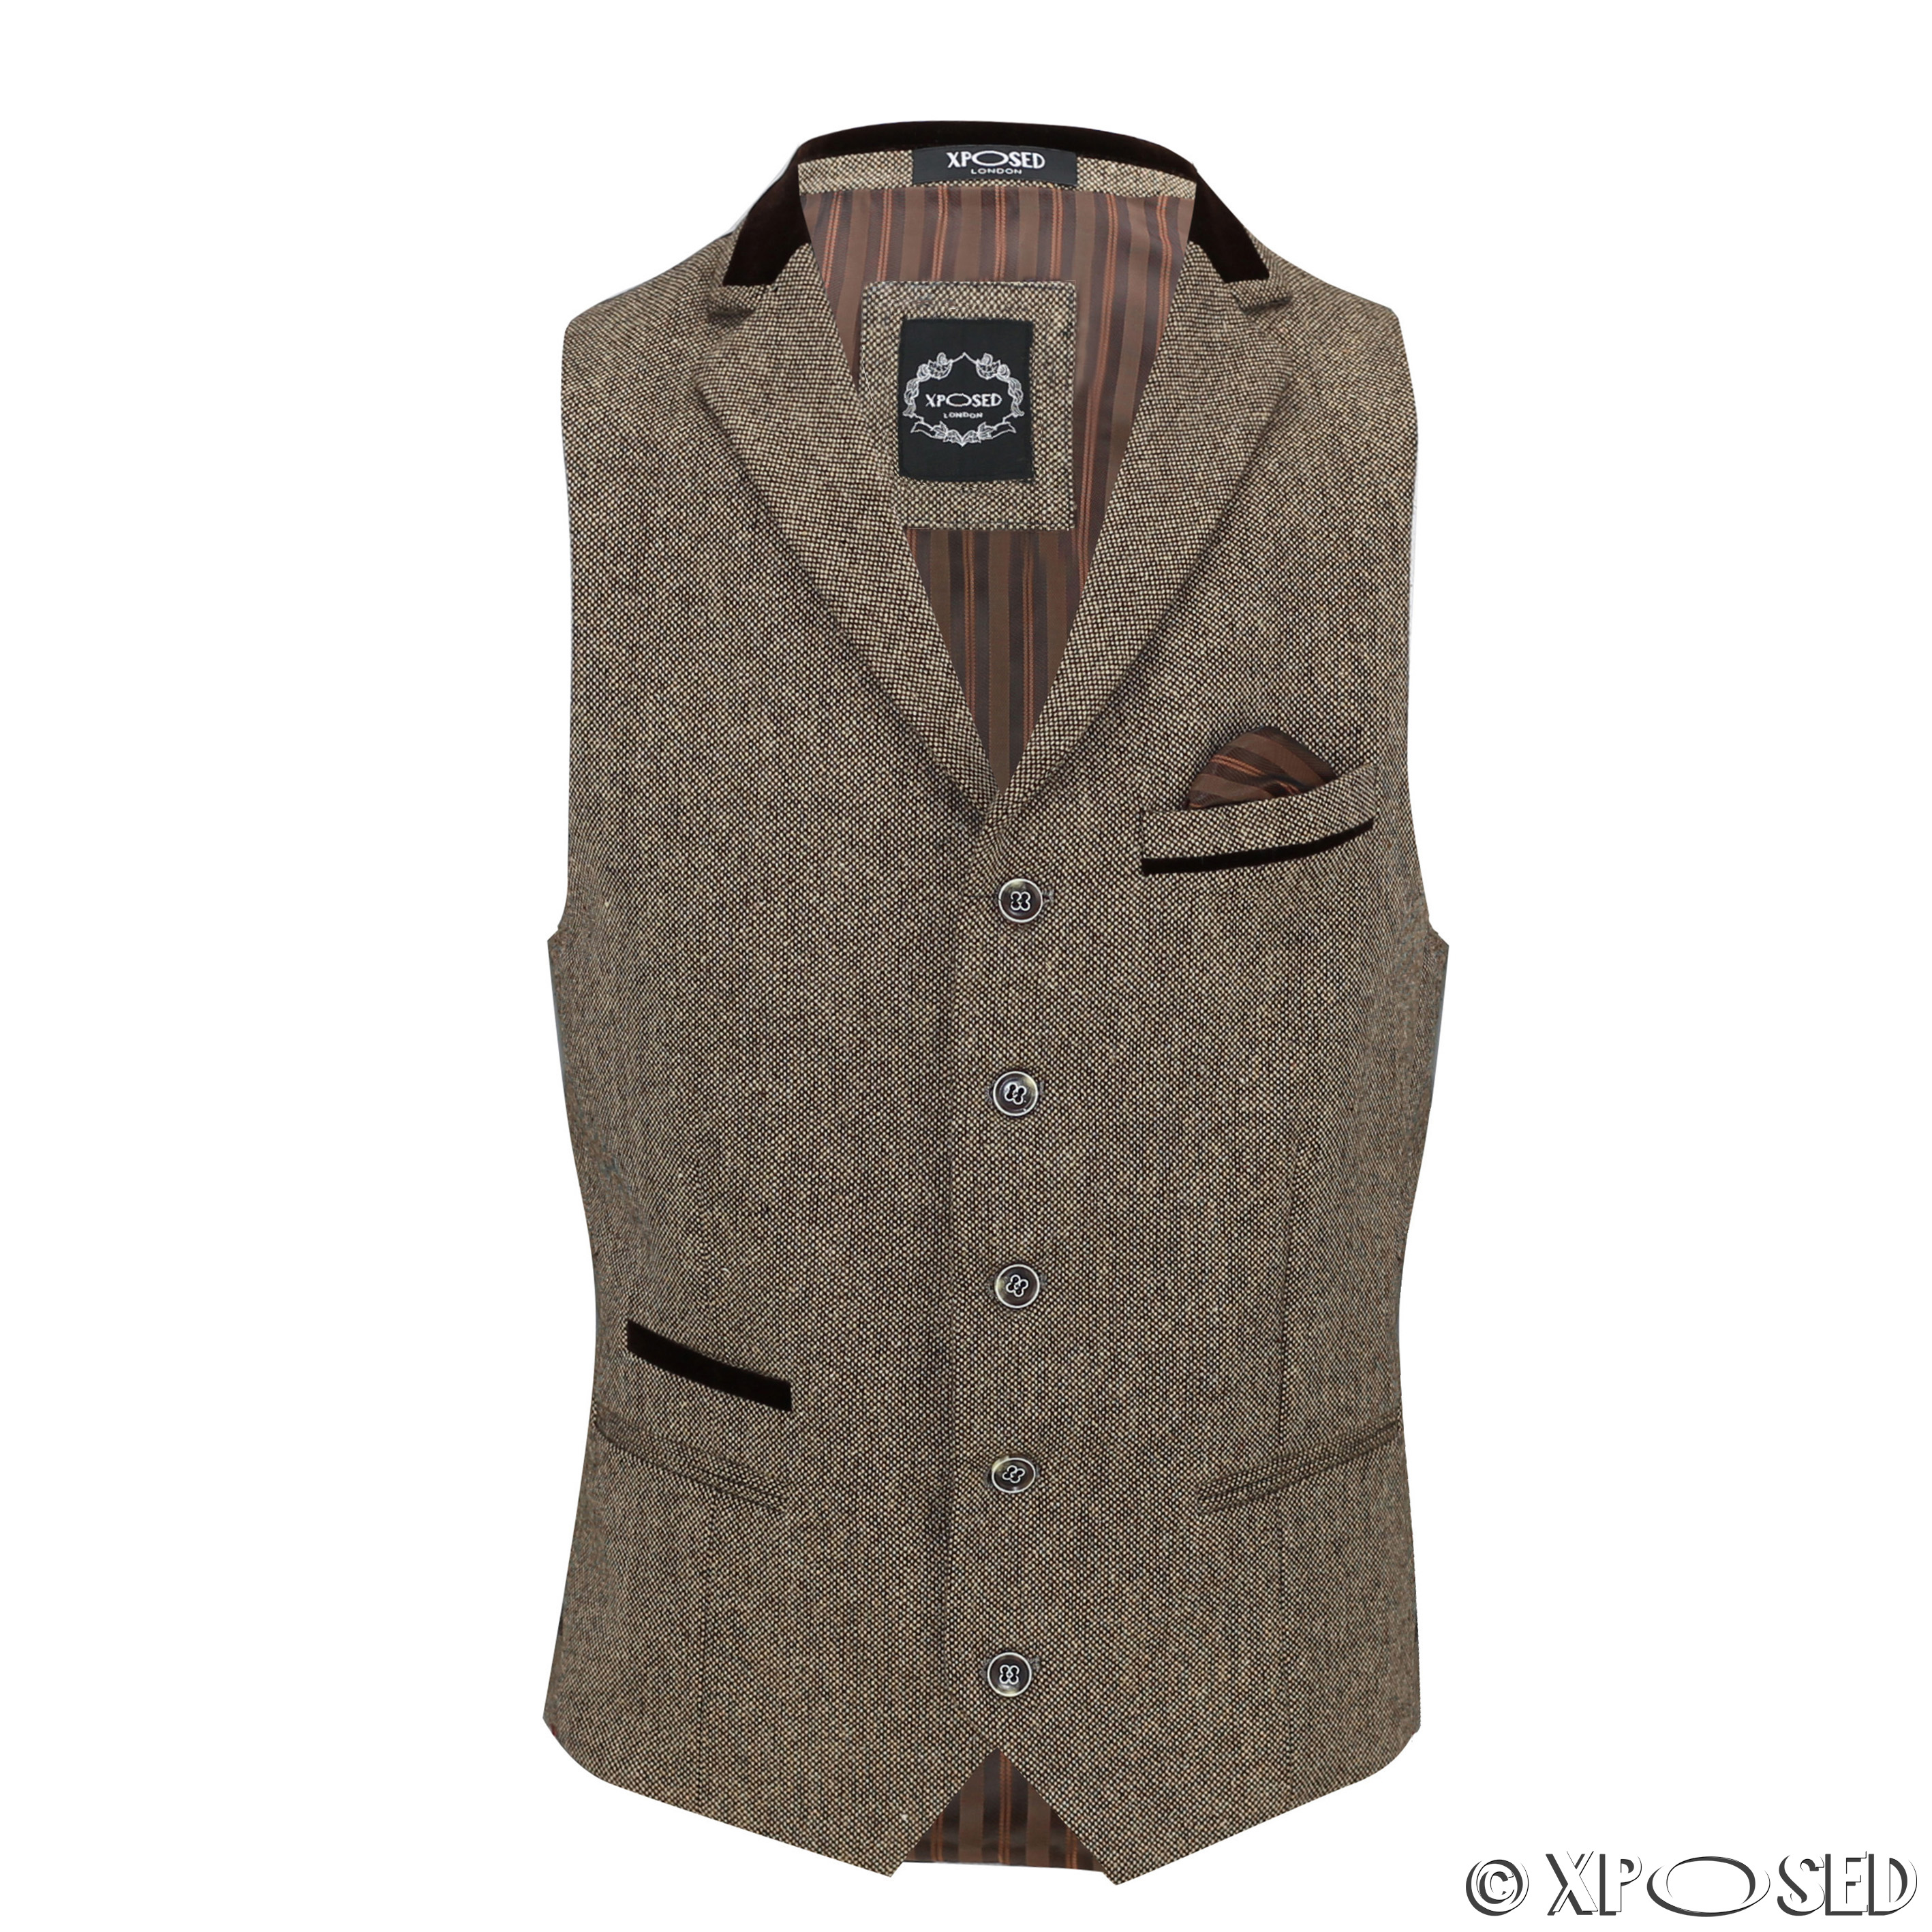 Browse our collection of premium quality Tweed Waistcoats. Quintessential British styling at it's best, you'll look every inch the British Gentleman at an affordable price.